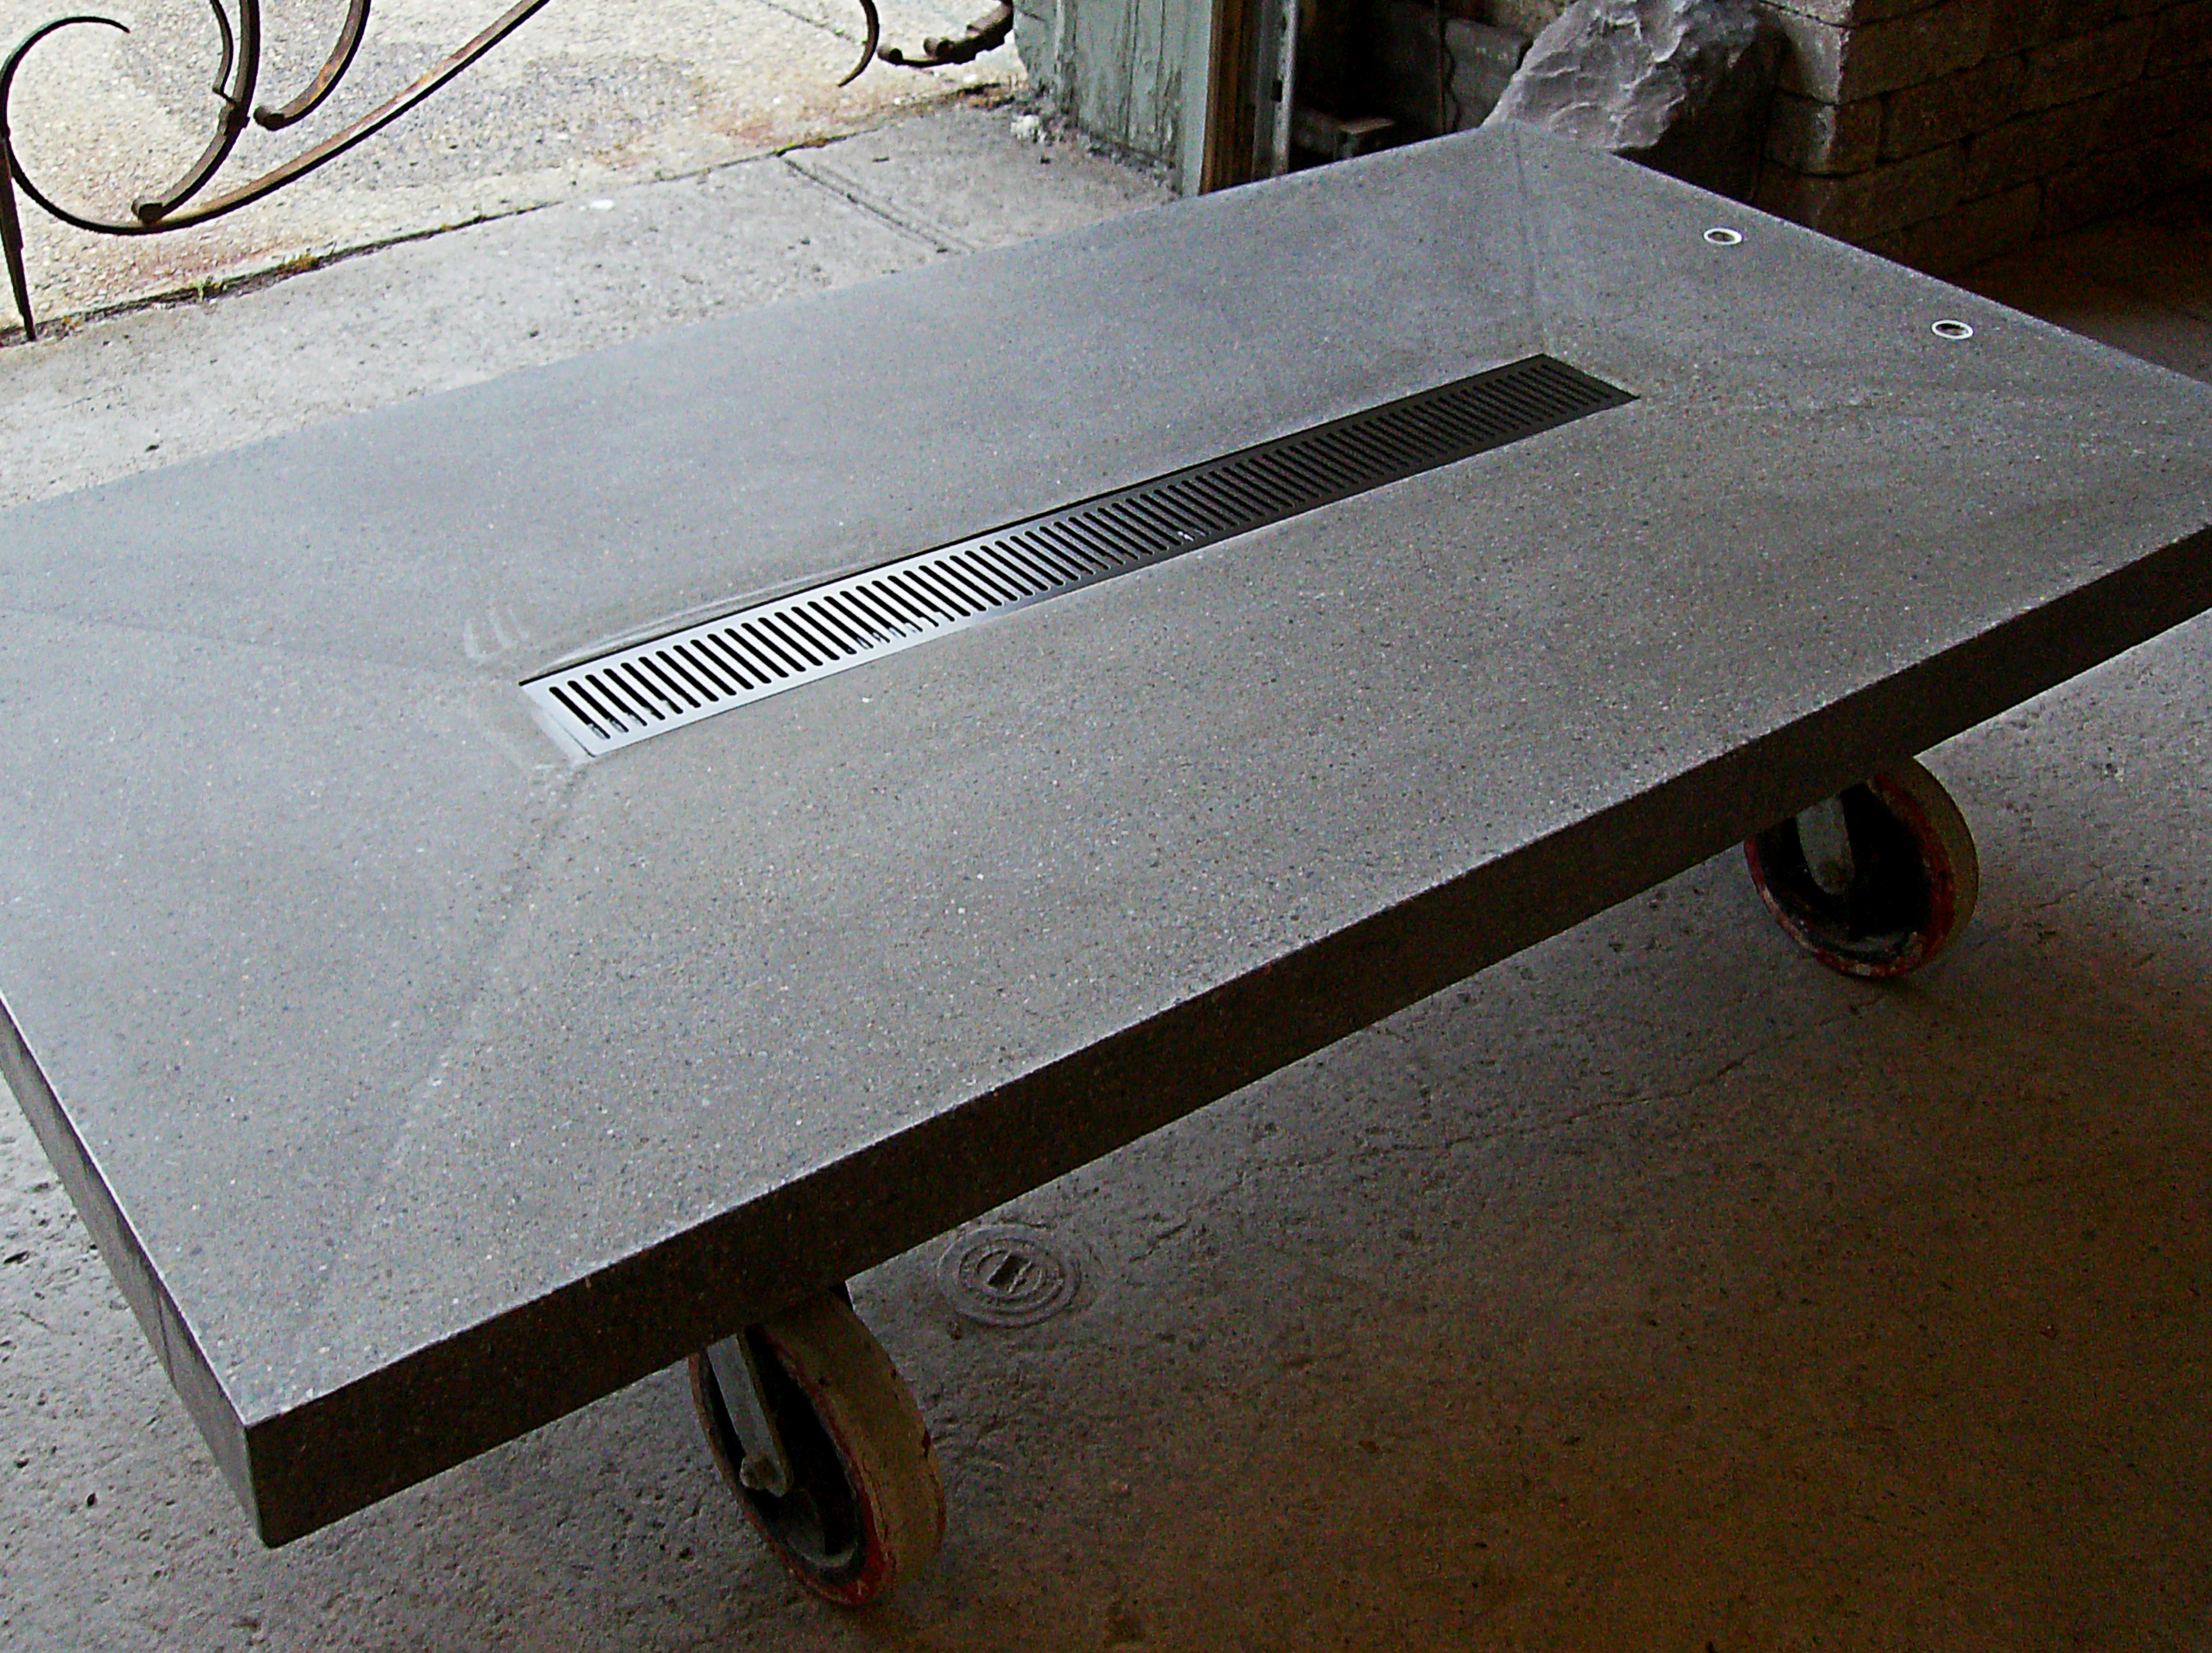 Concrete Table with Castors